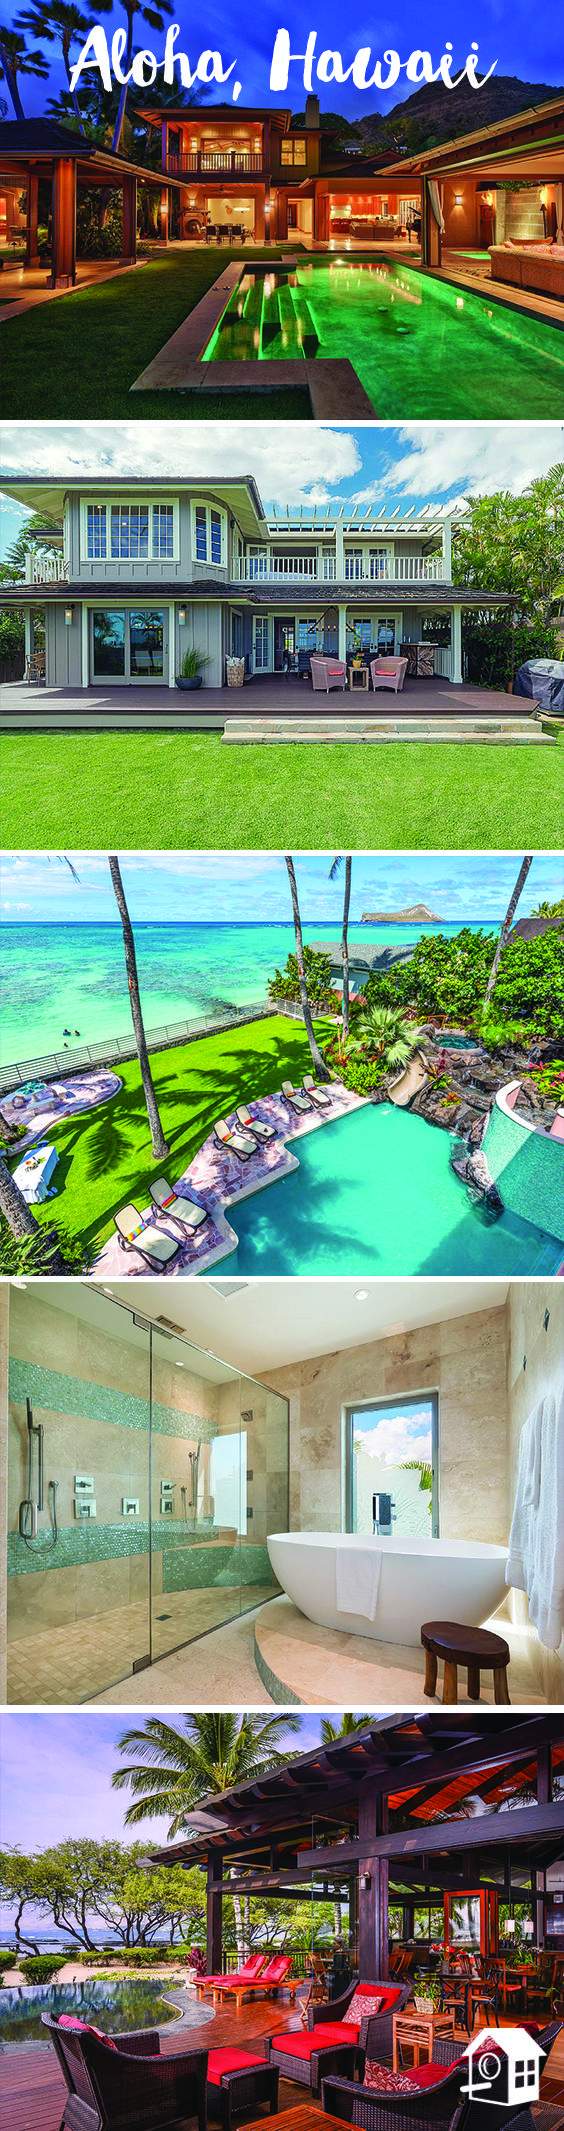 Breathtaking views in #Hawaii! Find the perfect home for your next beachy vacation!